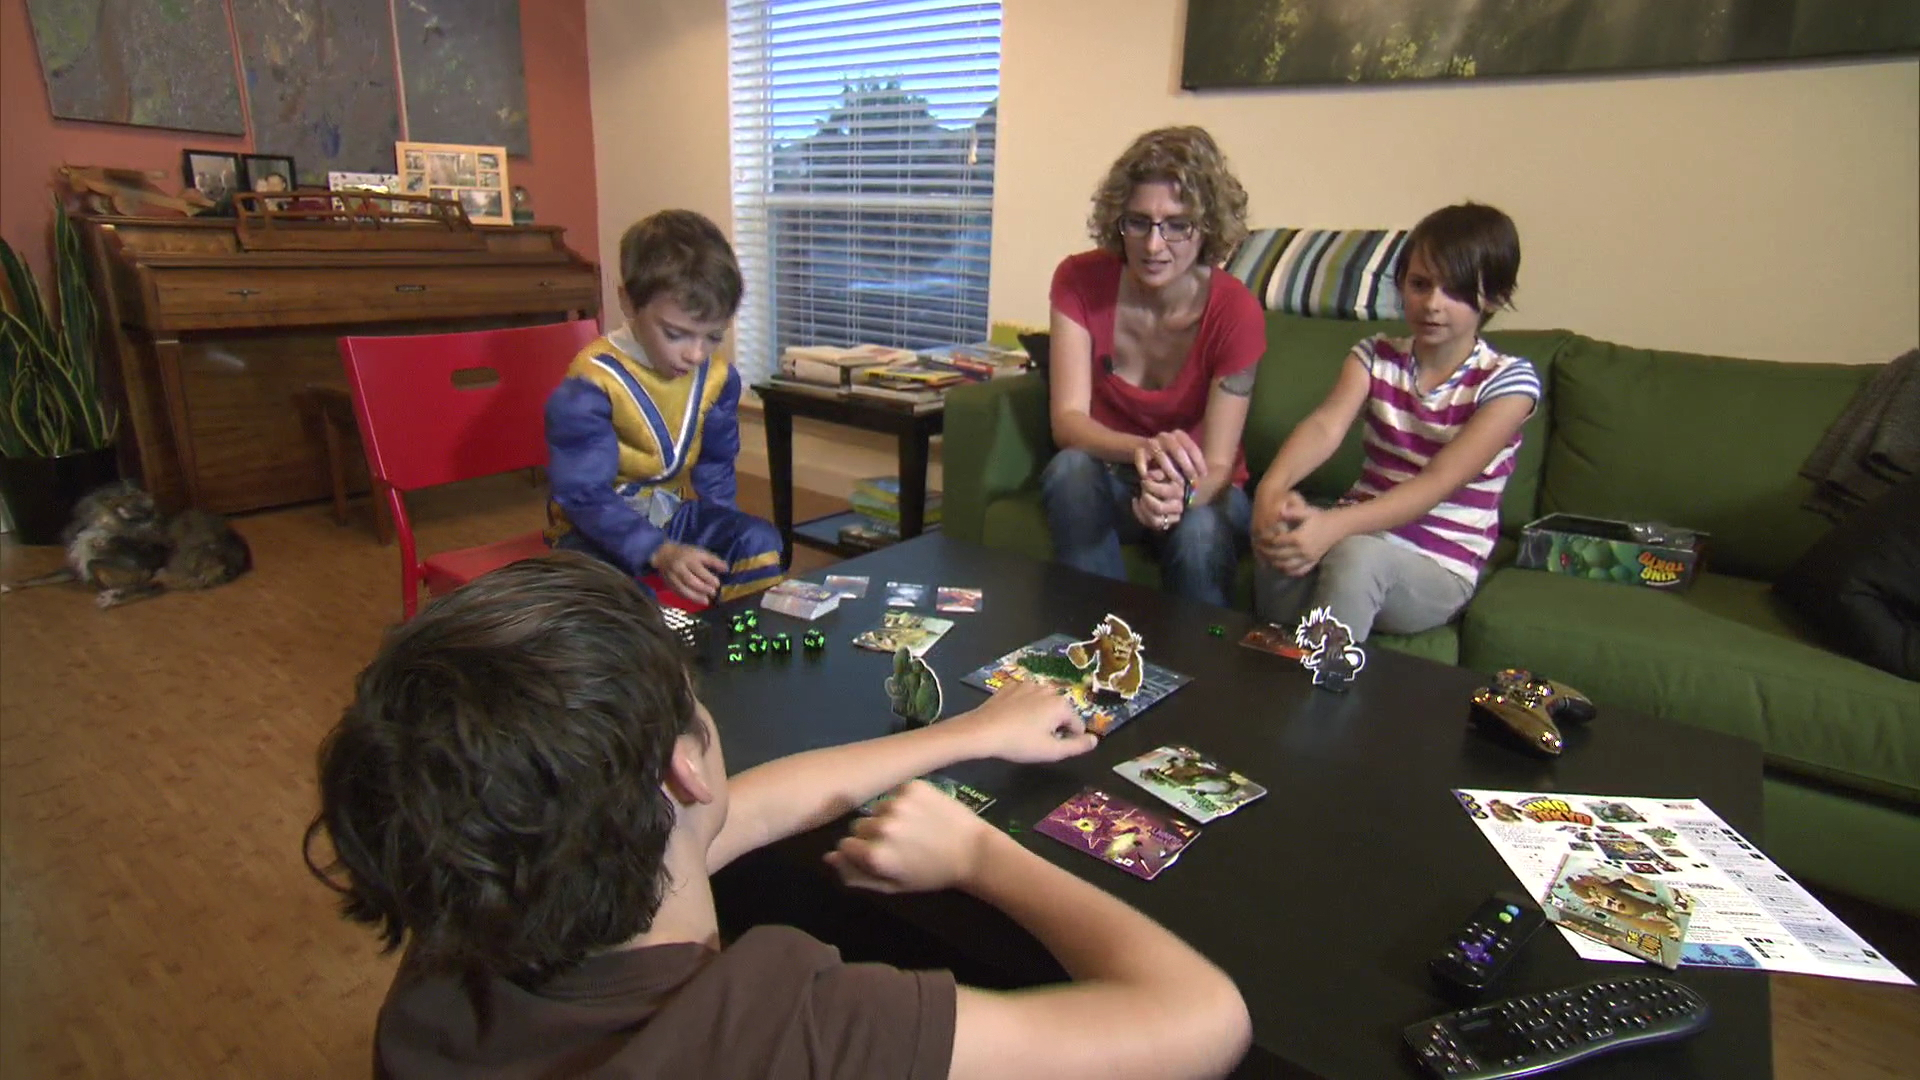 Mom Questioned Over Sons Solo Outdoor Playtime - Cbs News-9955